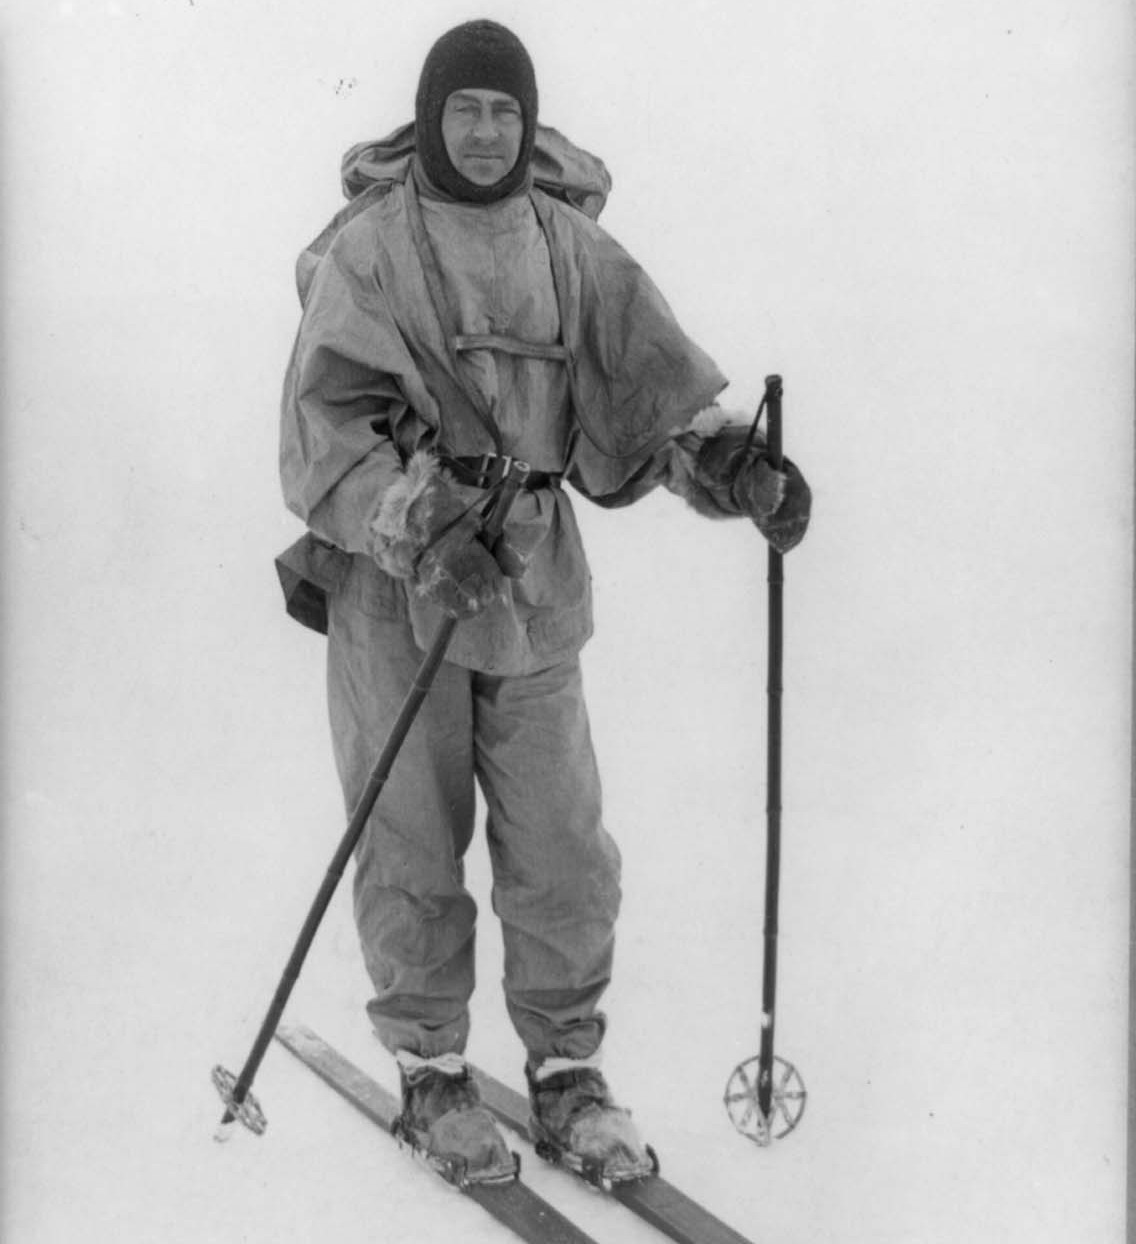 Scott on skis near Cape Evans, 191